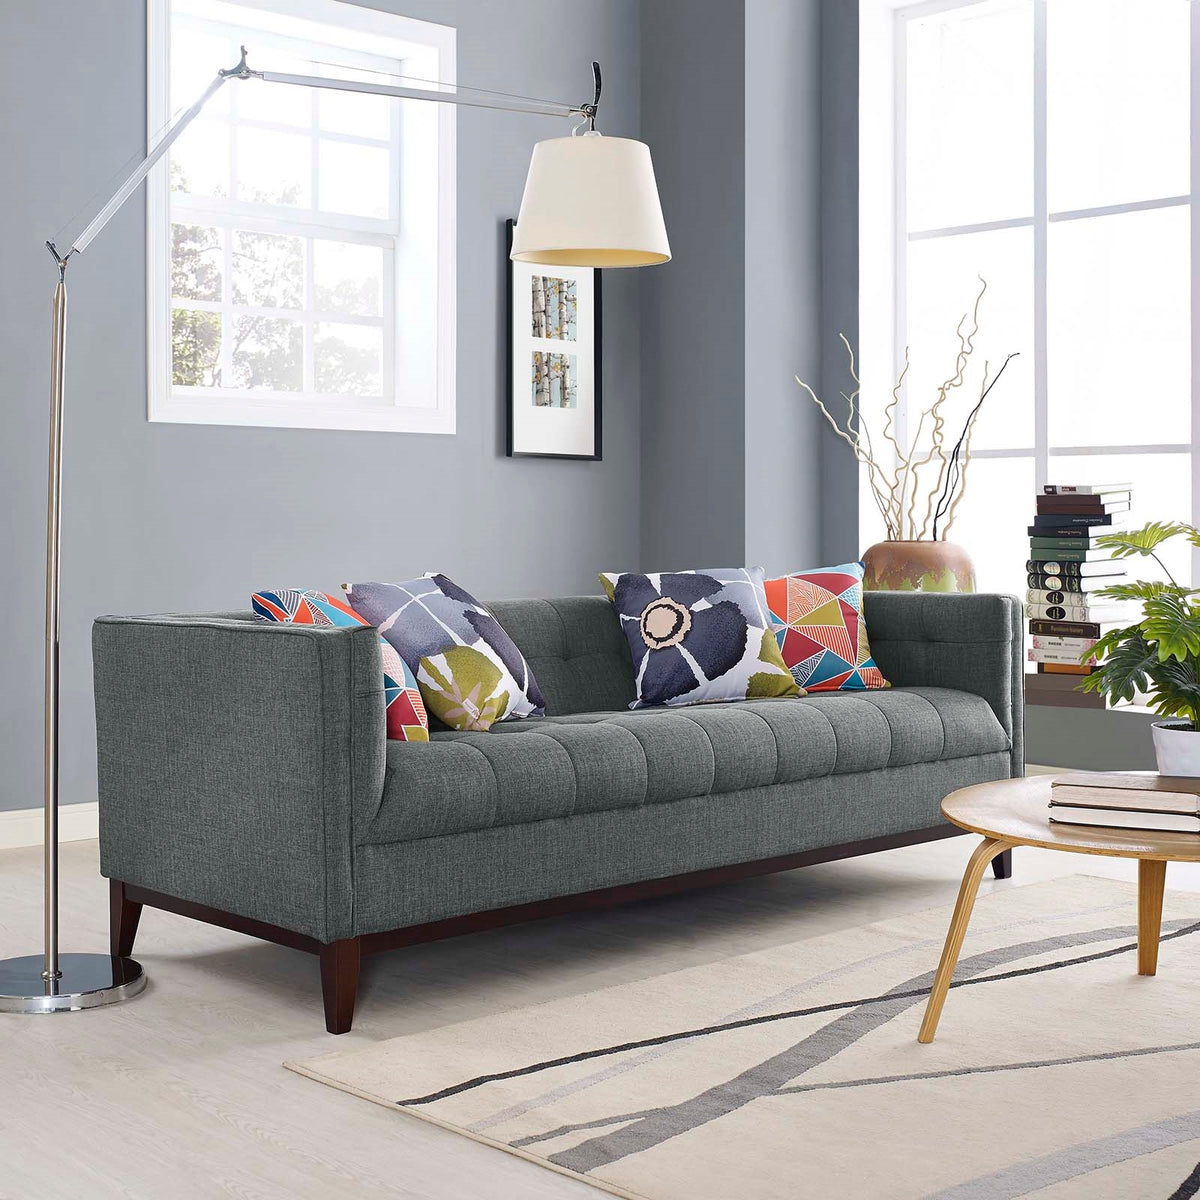 Swell Sofa Gray